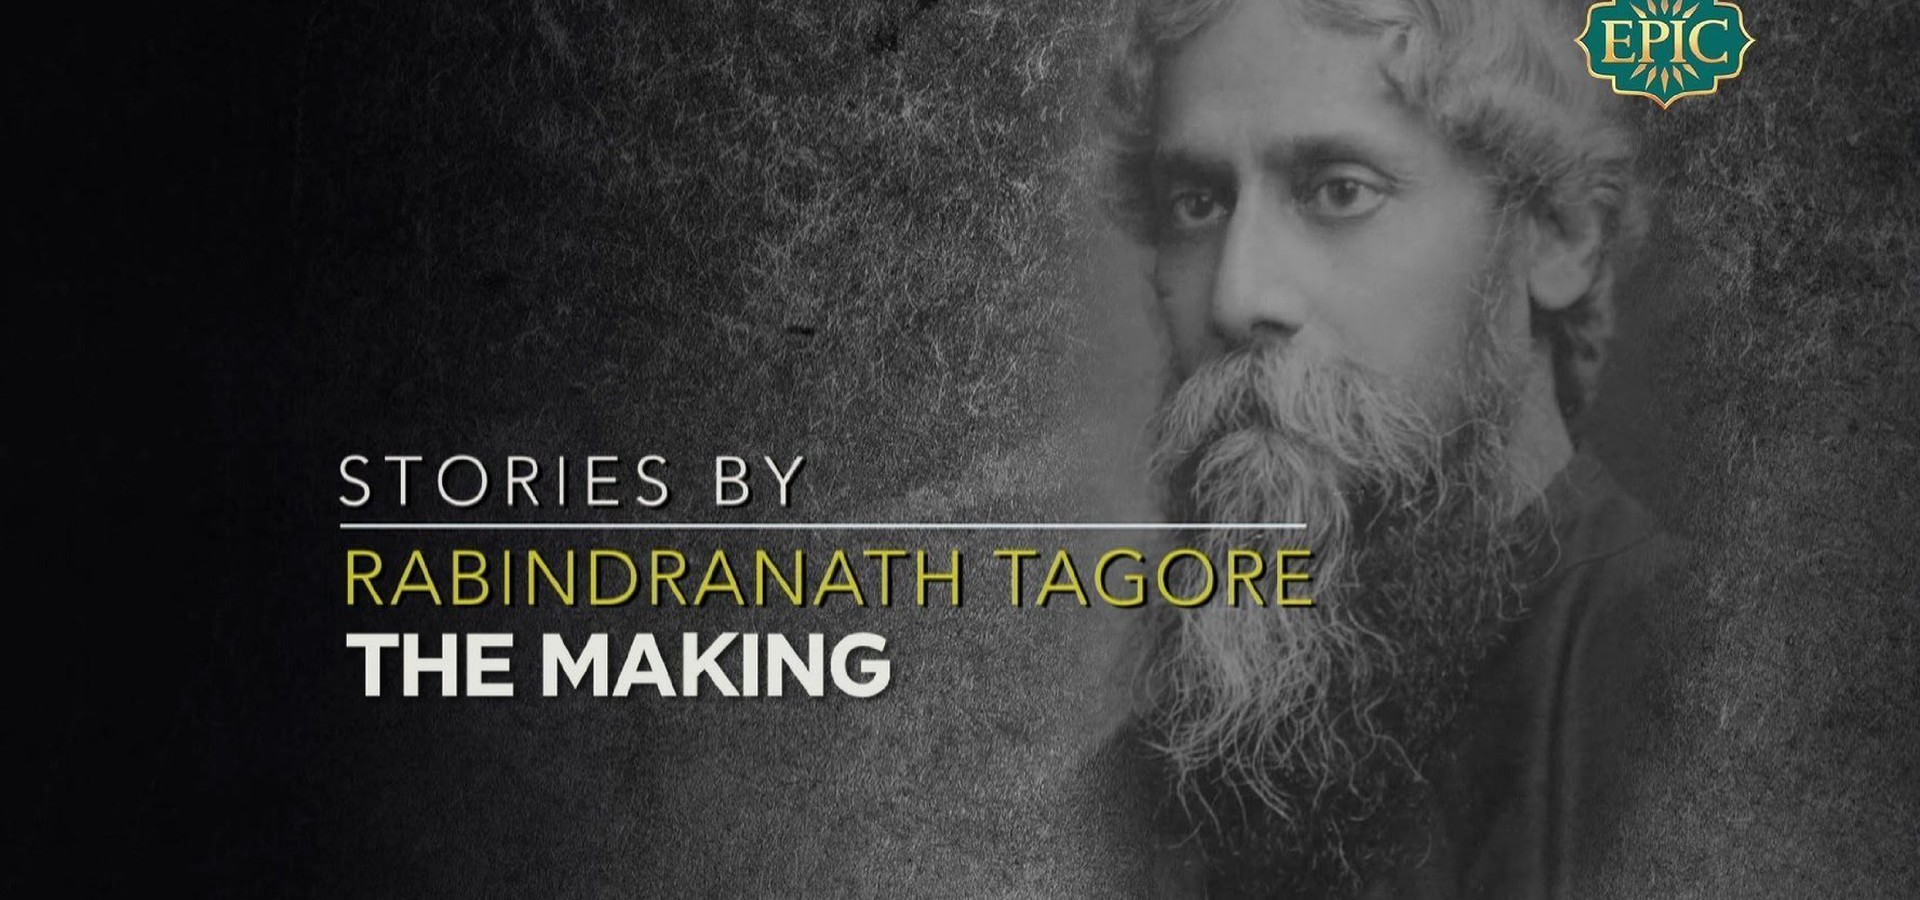 Stories by Rabindranath Tagore